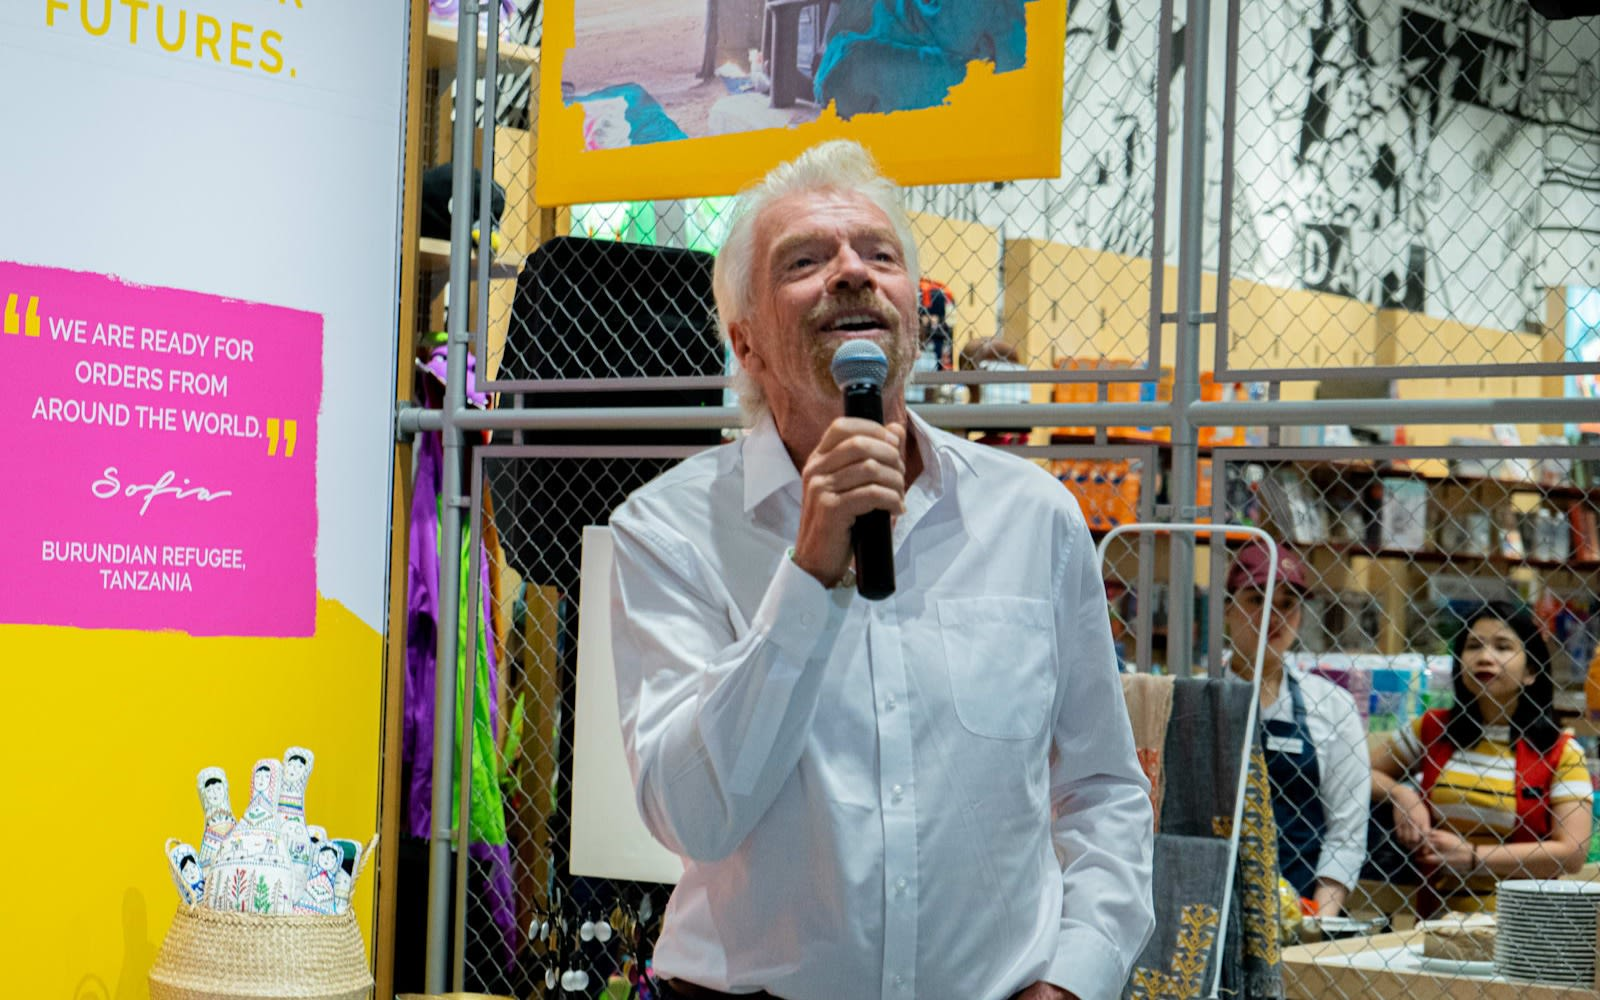 Richard Branson in white shirt holding a microphone and smiling